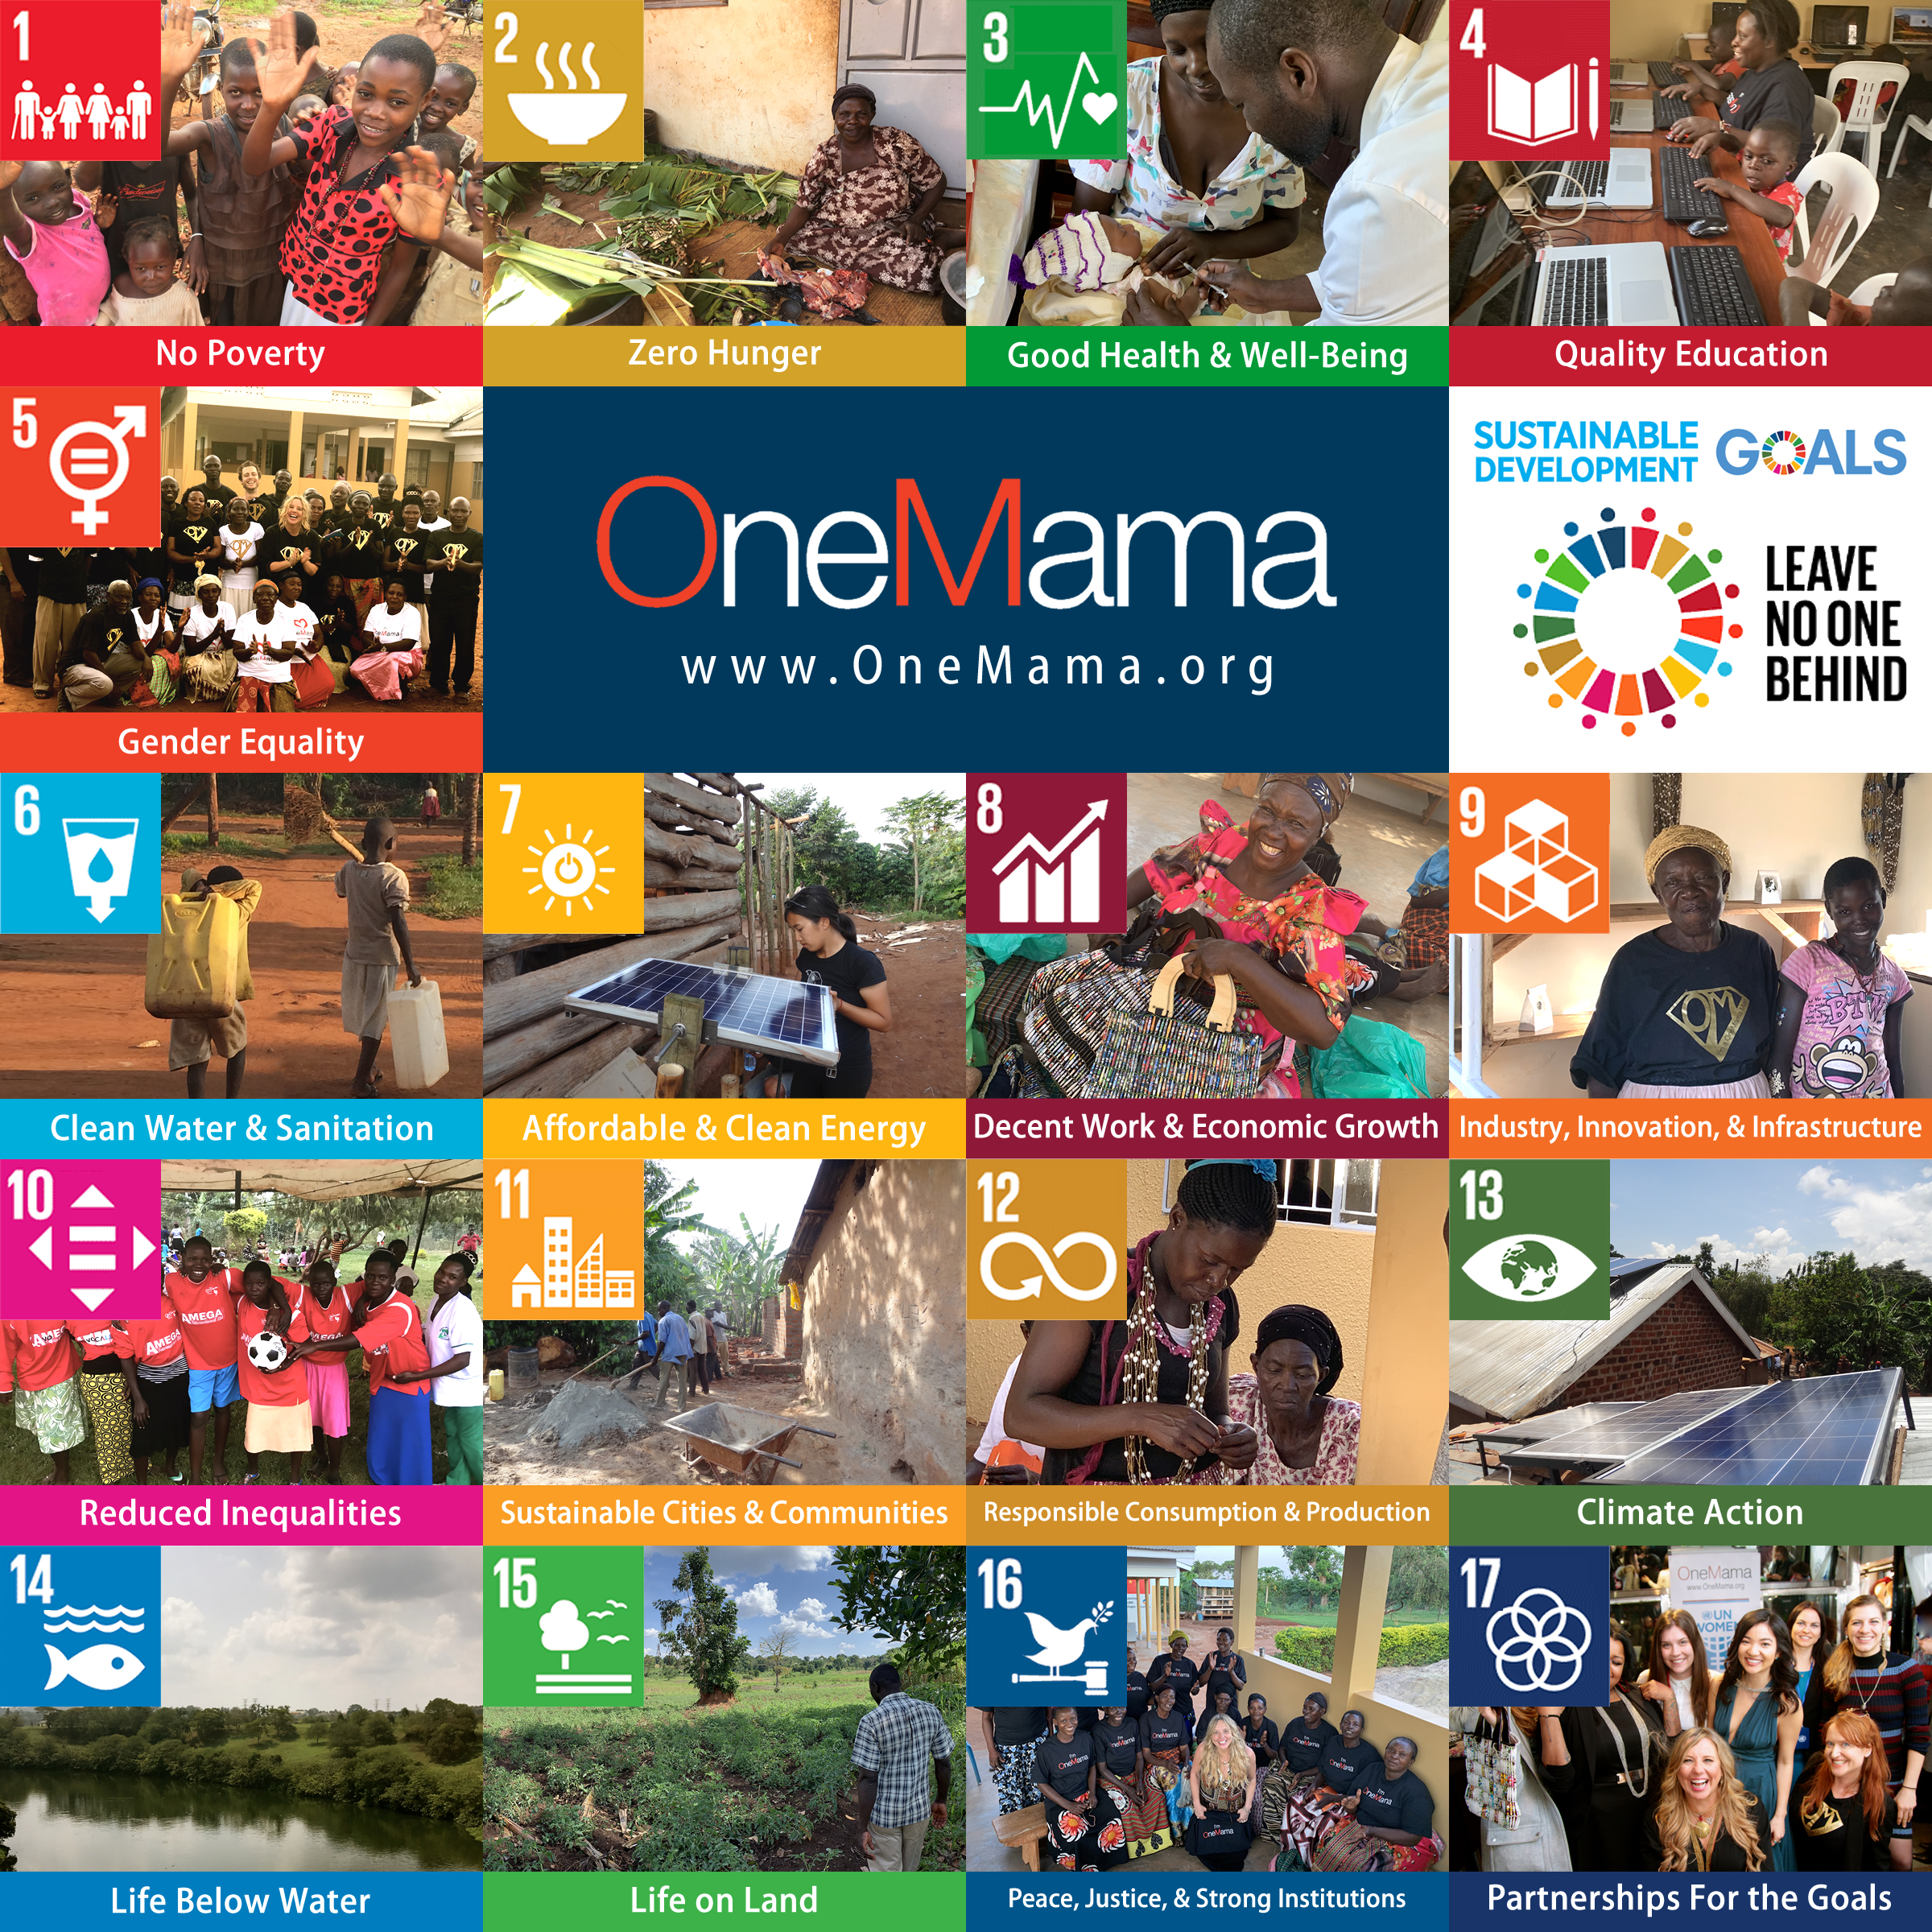 OneMama leads the way with the following Sustainable Development Goals